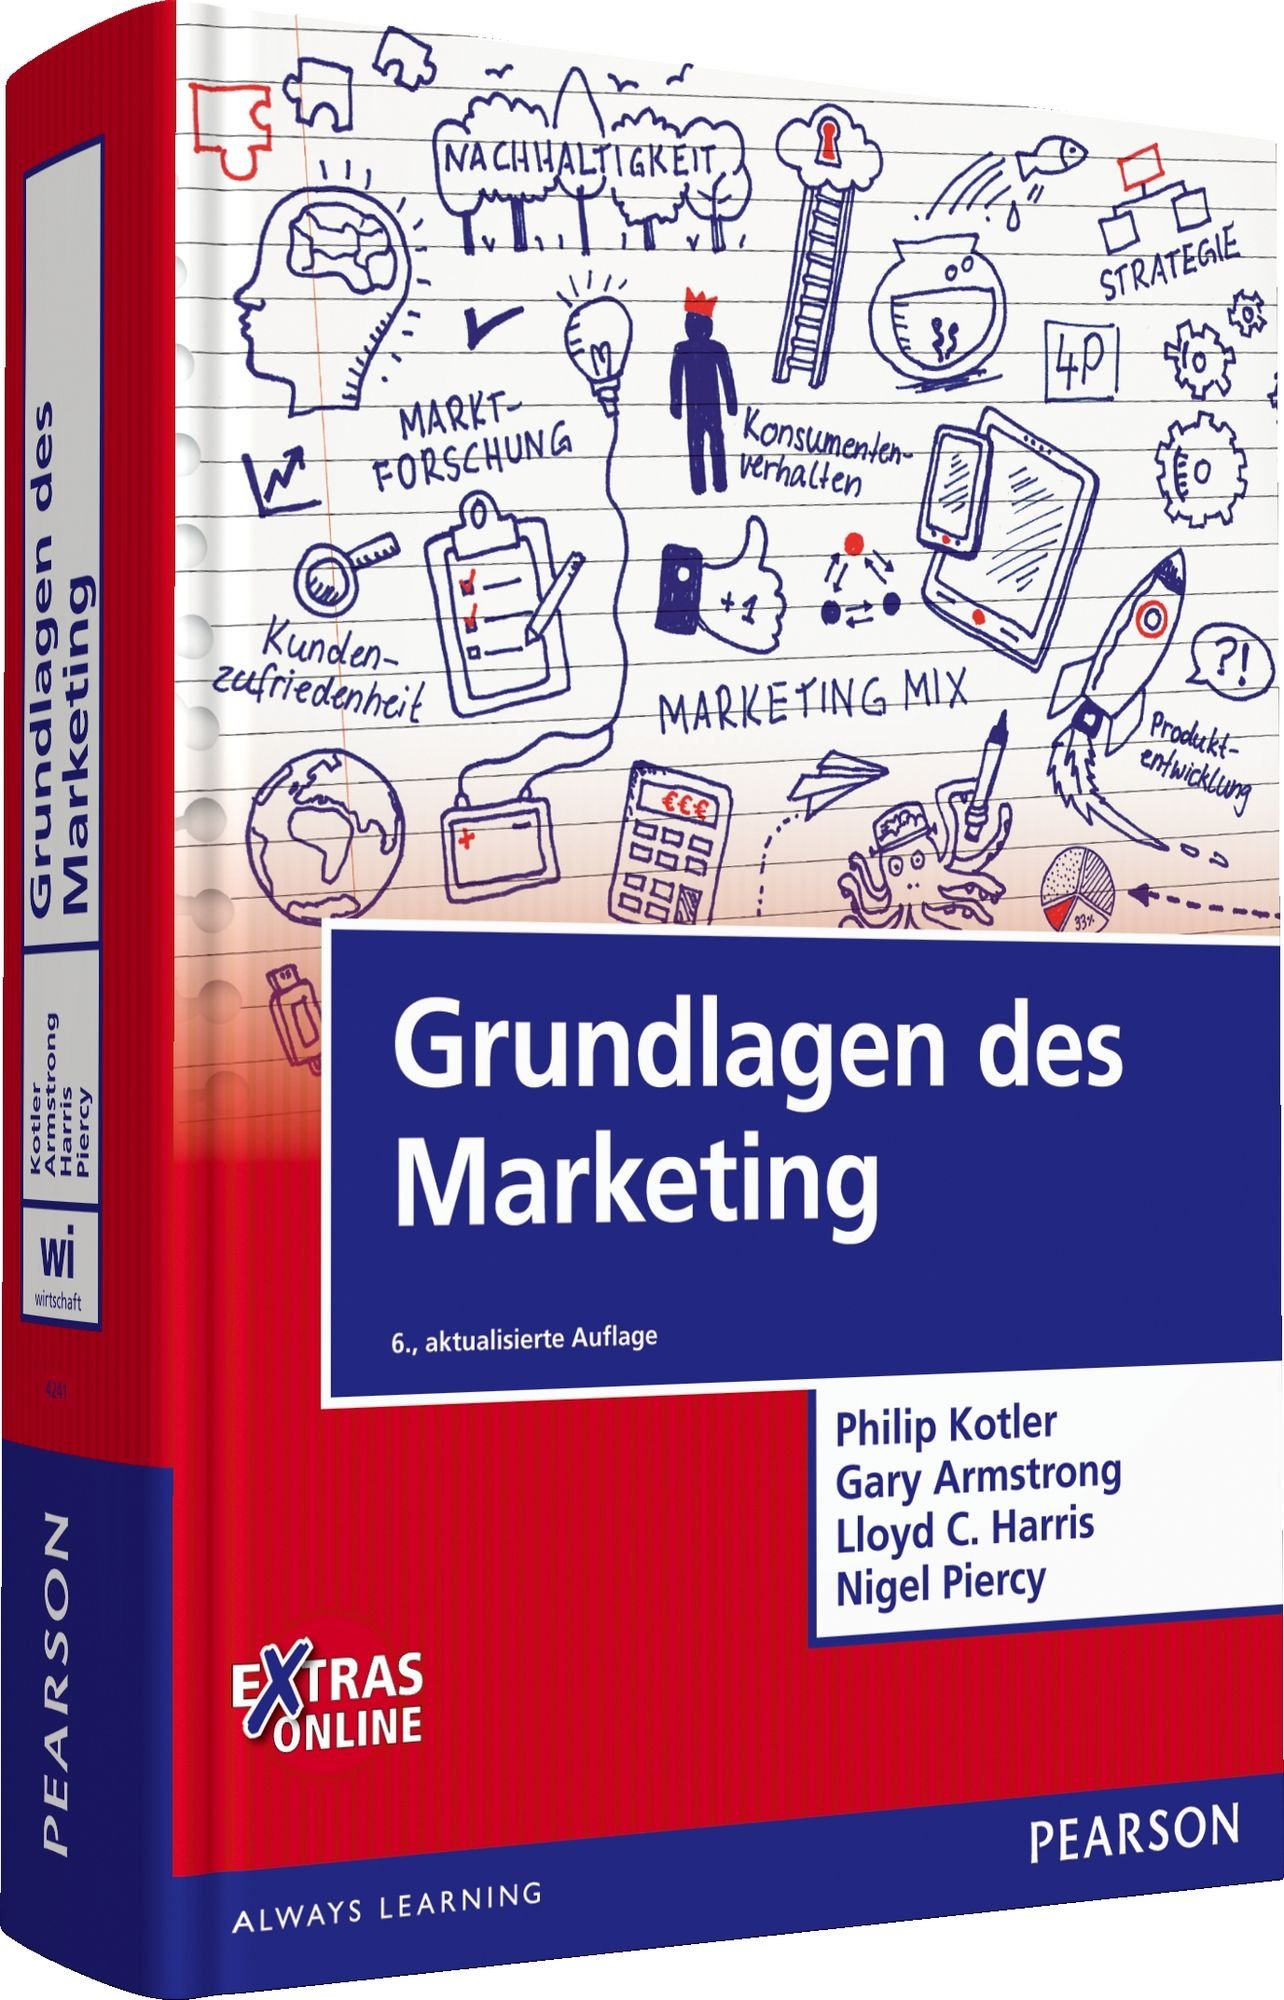 Grundlagen des Marketing (Pearson Studium - Economic BWL) Gebundenes Buch – 1. April 2016 Philip Kotler Gary Armstrong Lloyd C. Harris Nigel Piercy